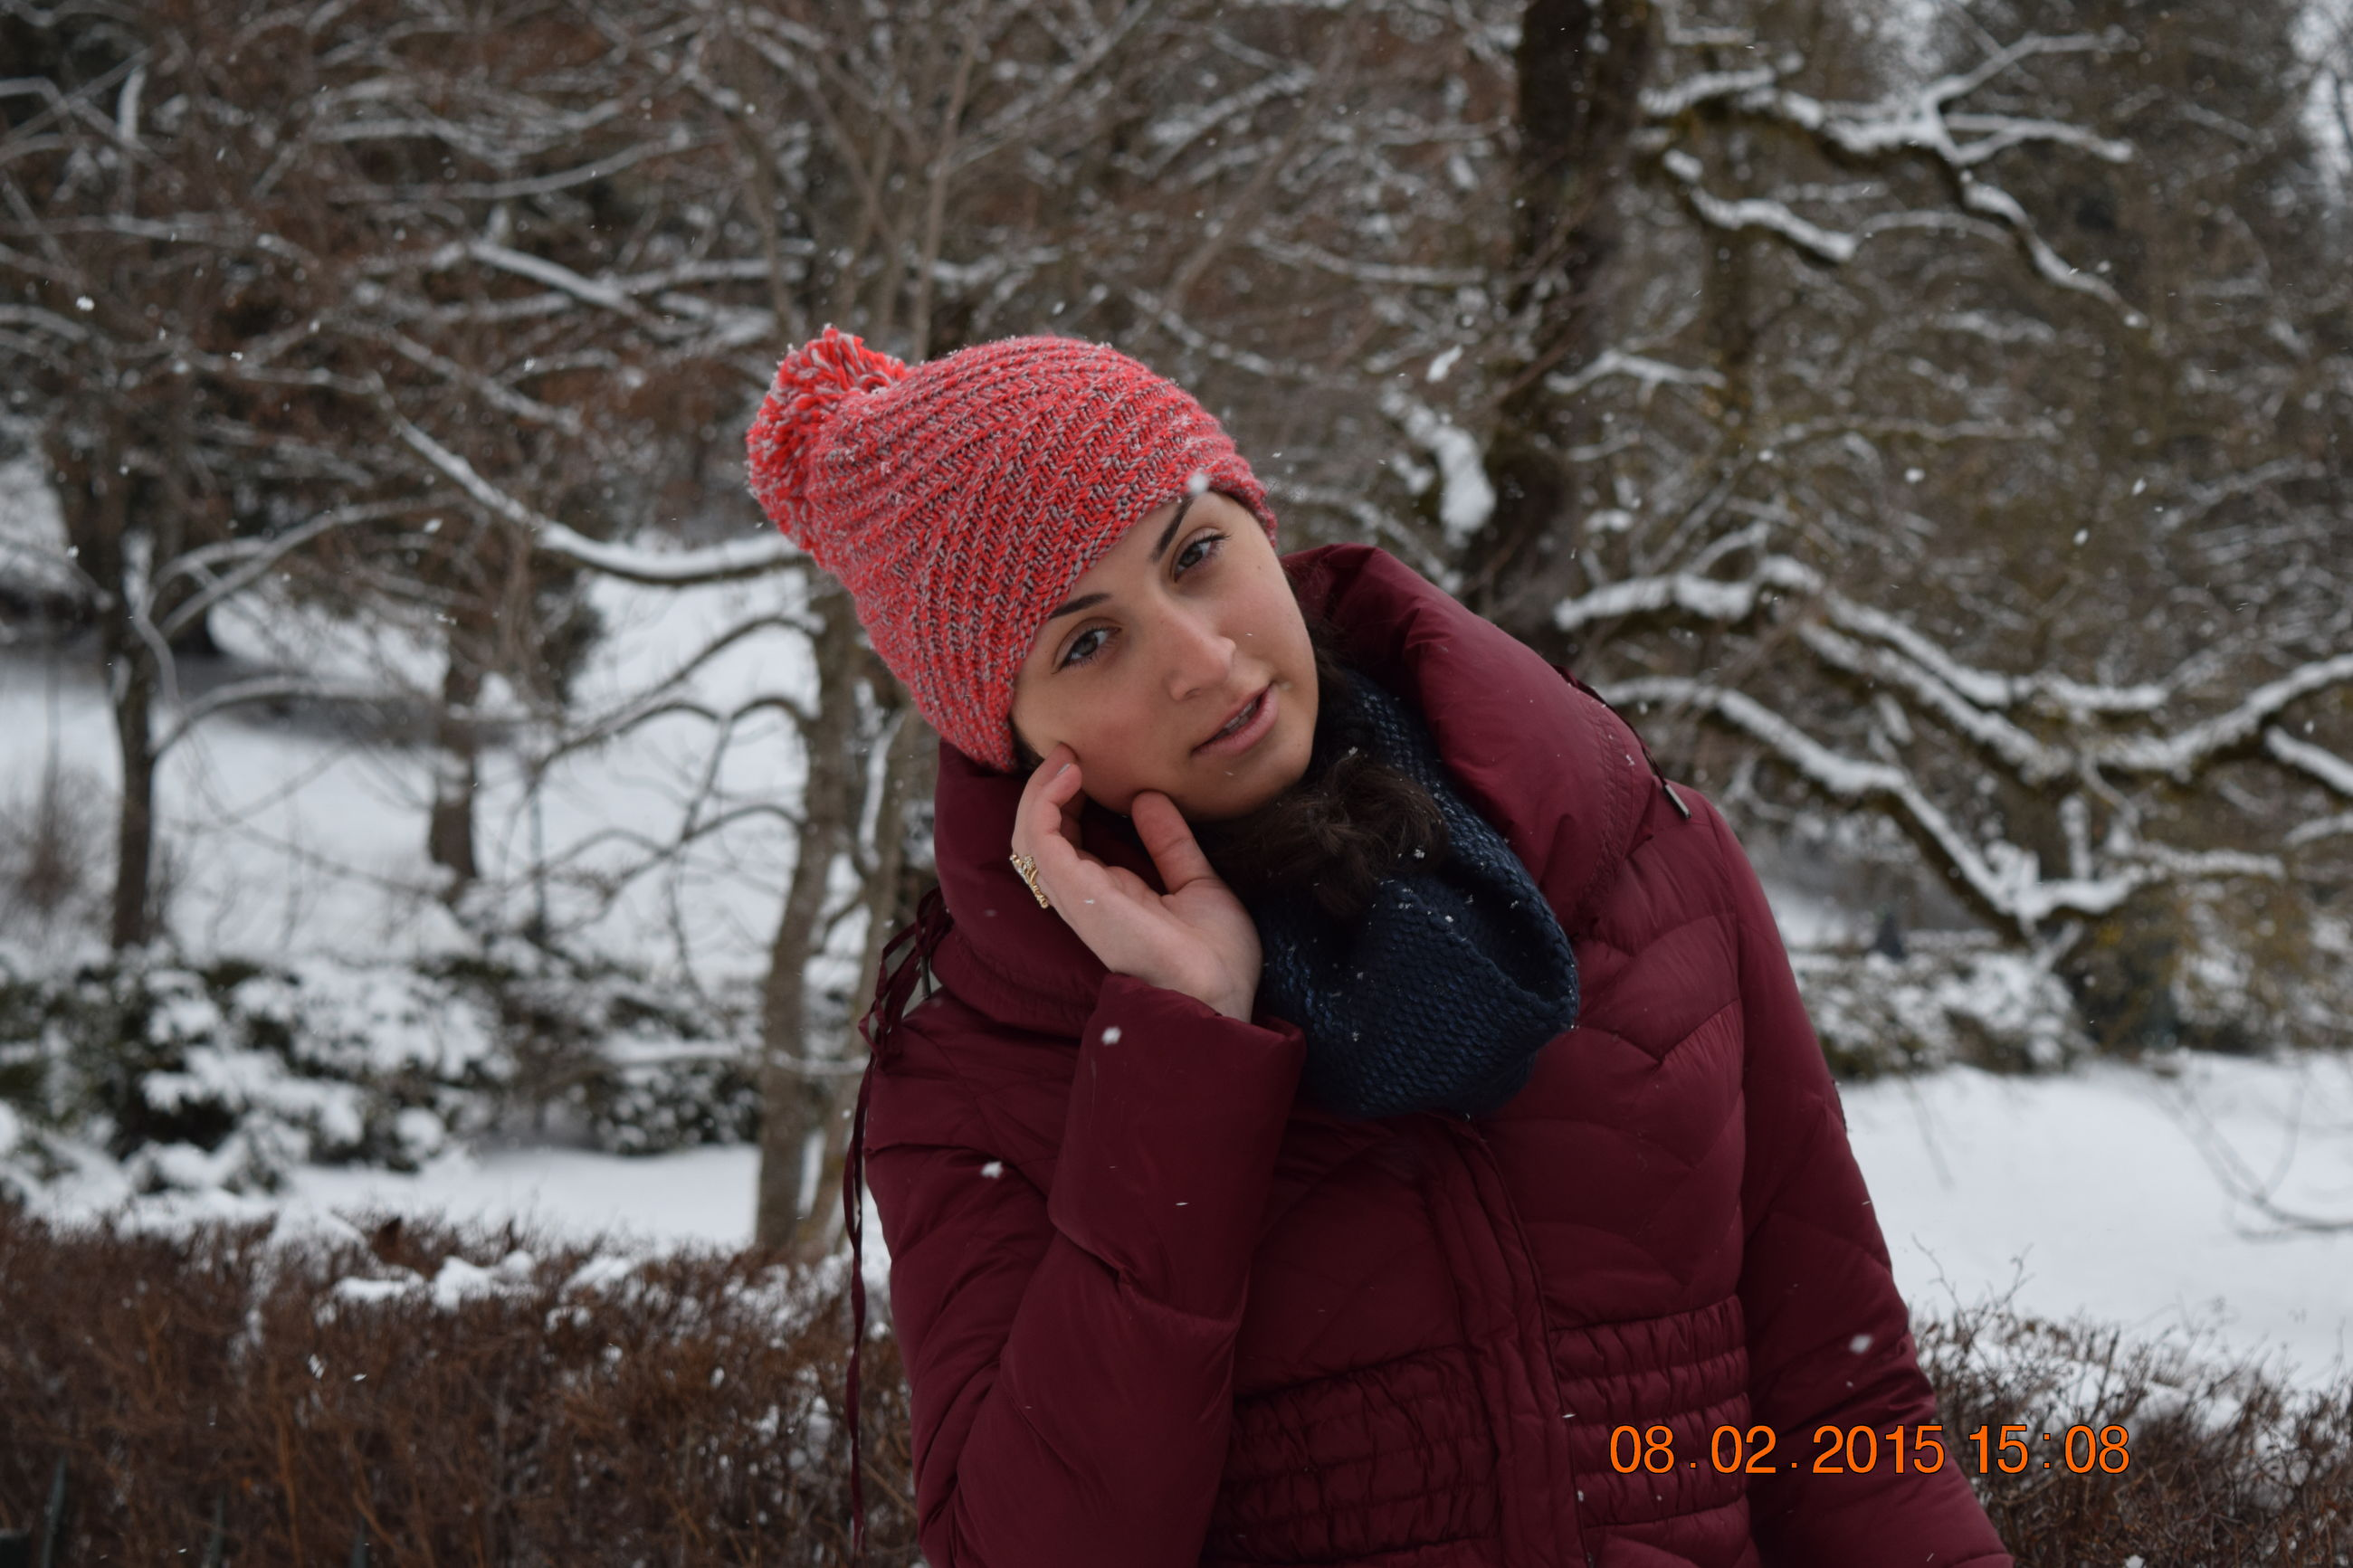 lifestyles, person, winter, leisure activity, portrait, cold temperature, looking at camera, snow, front view, warm clothing, three quarter length, waist up, smiling, childhood, casual clothing, young adult, elementary age, season